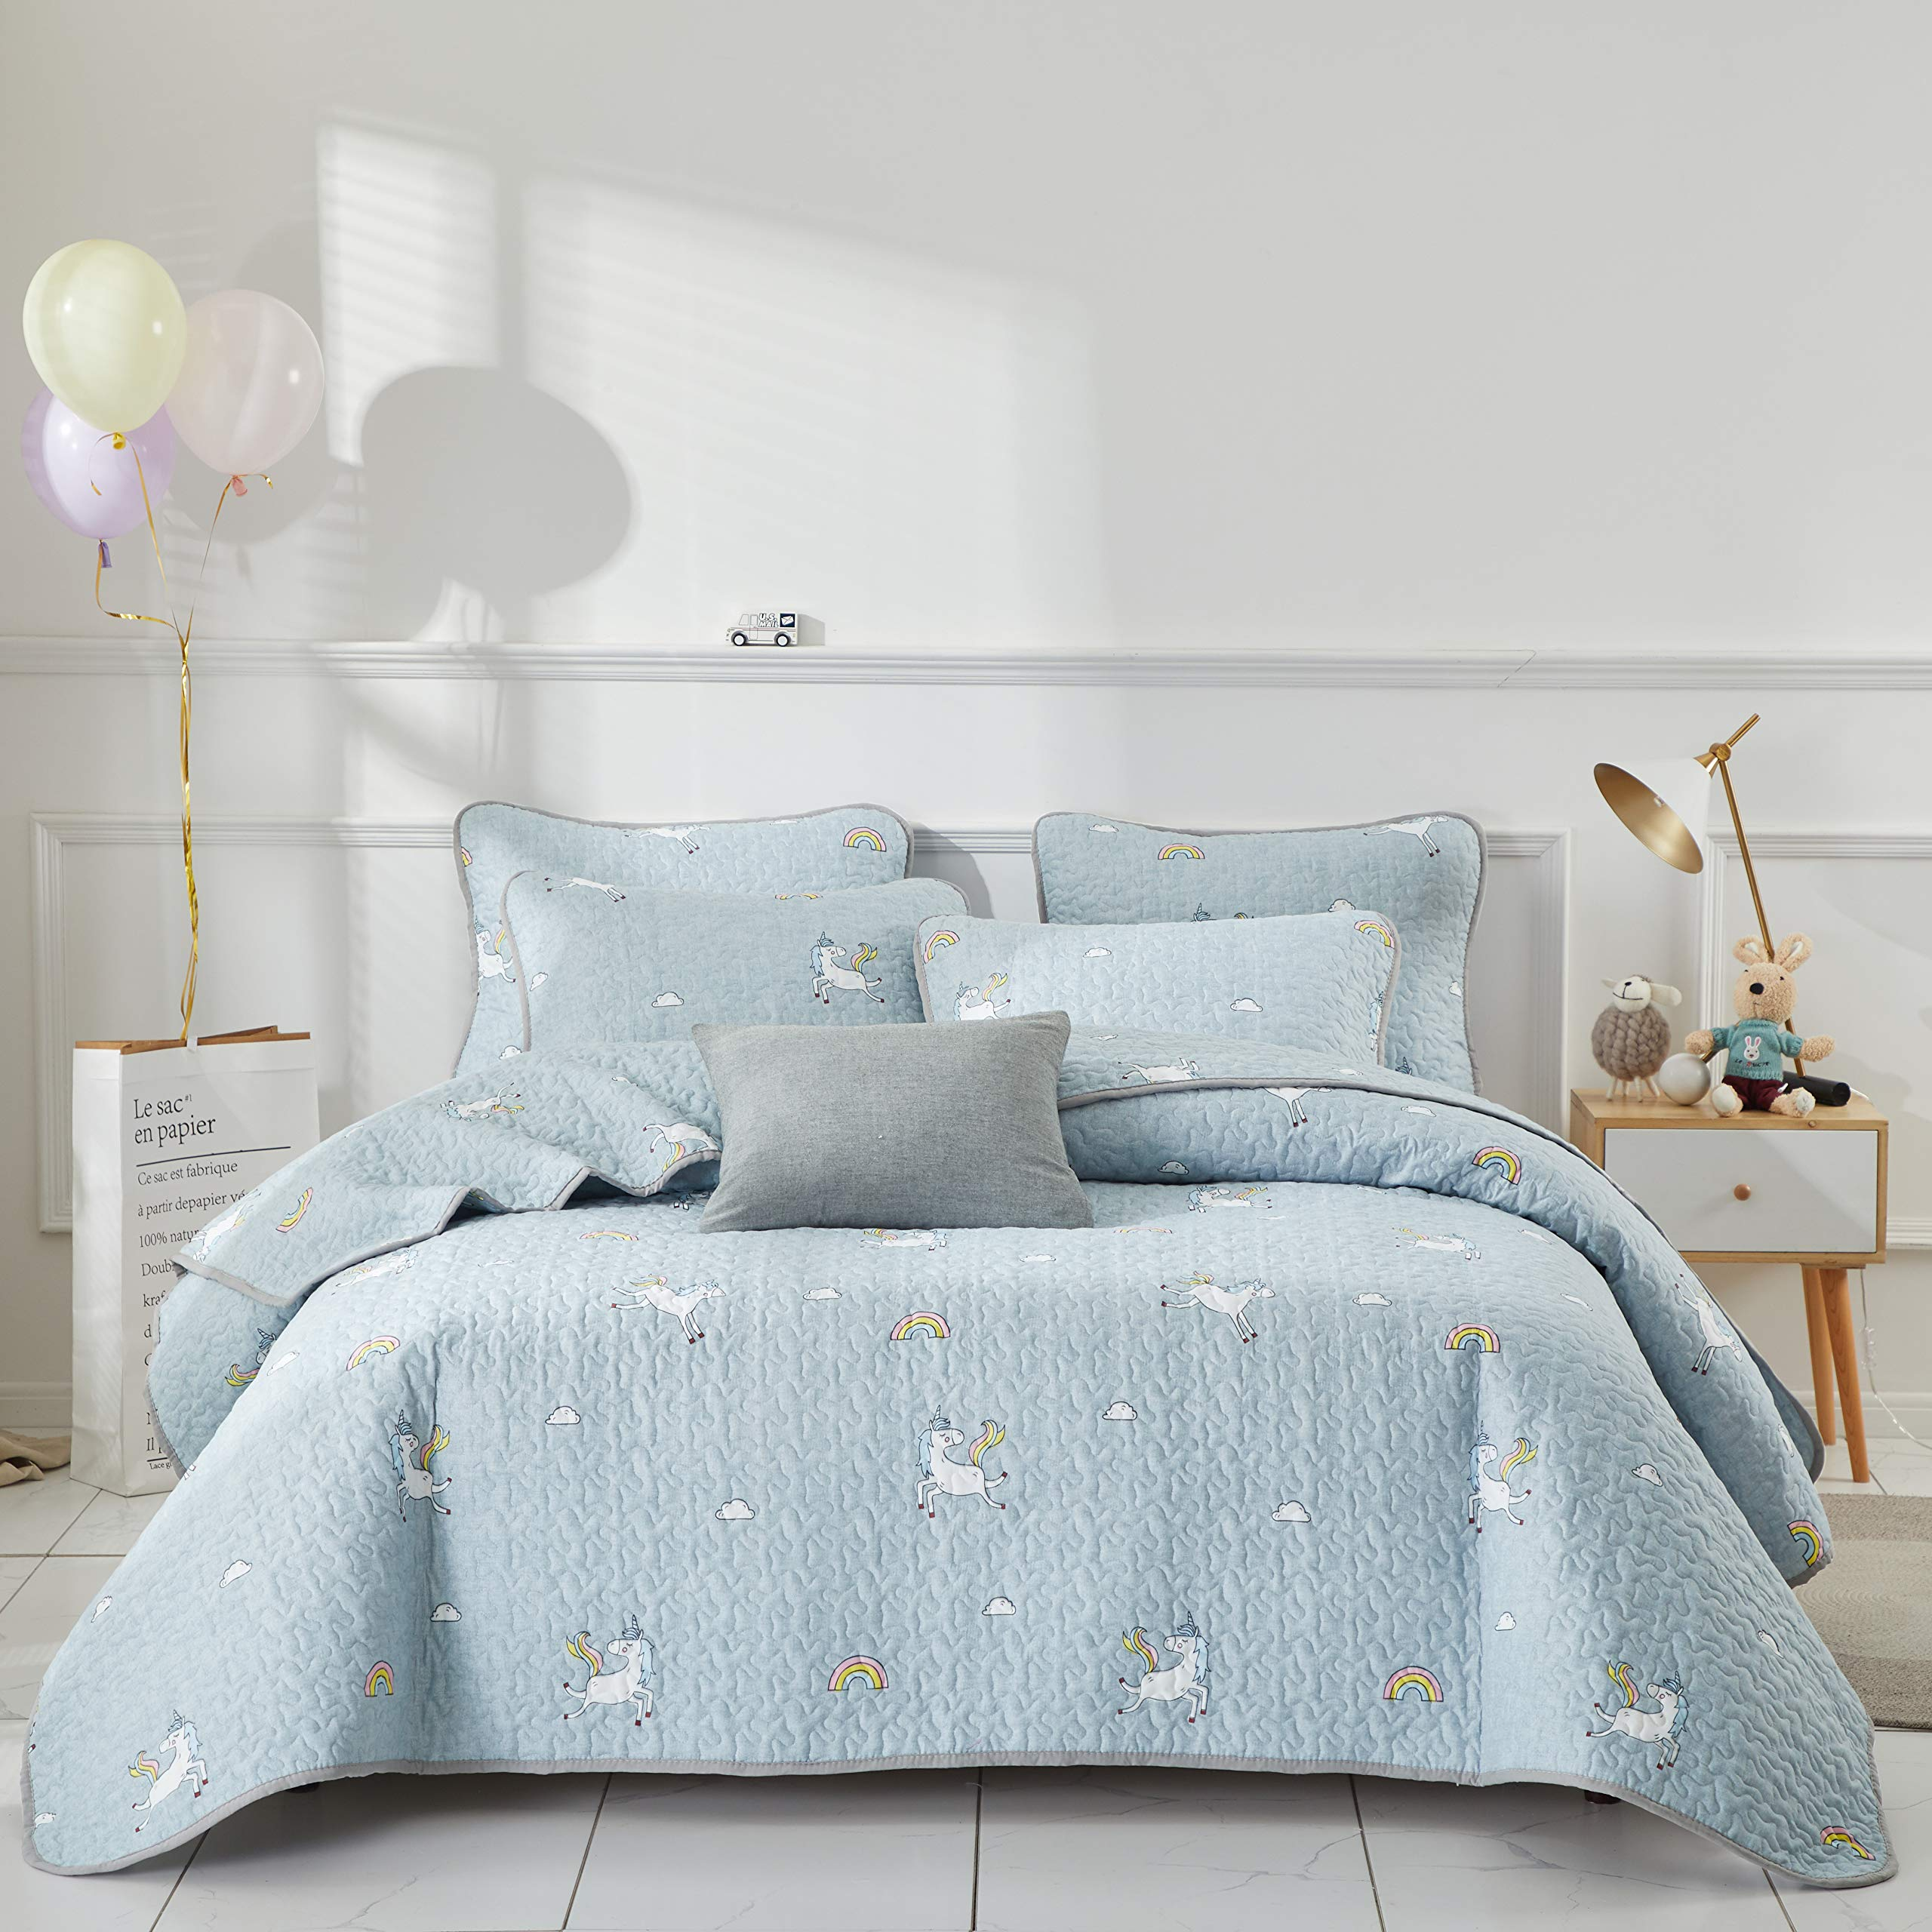 Uozzi Bedding 2 Piece Reversible Gray Quilt Set Twin Size 68x86 Soft Microfiber Lightweight Coverlet Bedspread Summer Bed Cover Set Blanket for Kids Unicorn Style (1 Quilt + 1 Shams)